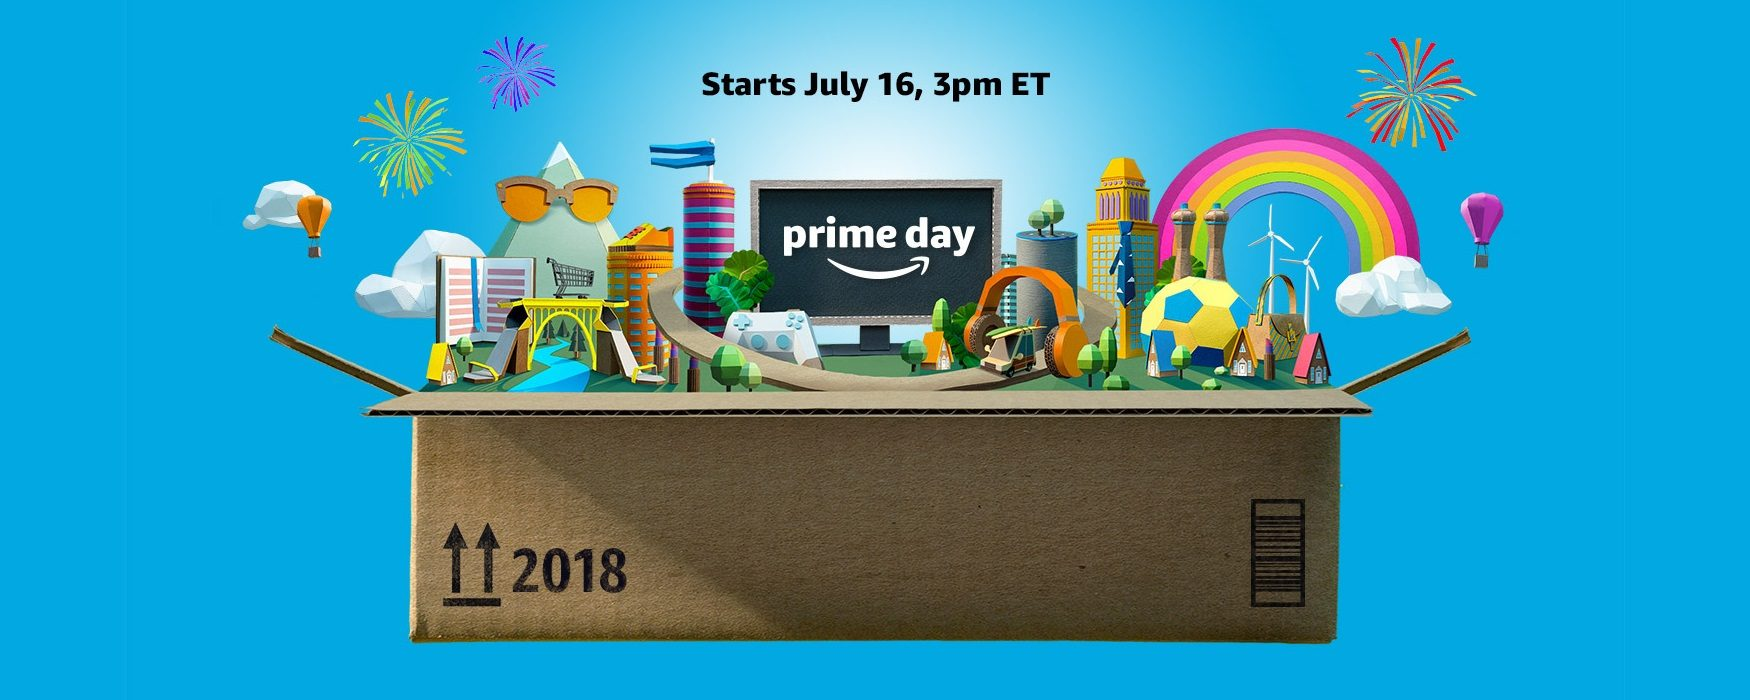 Amazon Prime Day 2018 Officially Starts Monday, July 16 ...